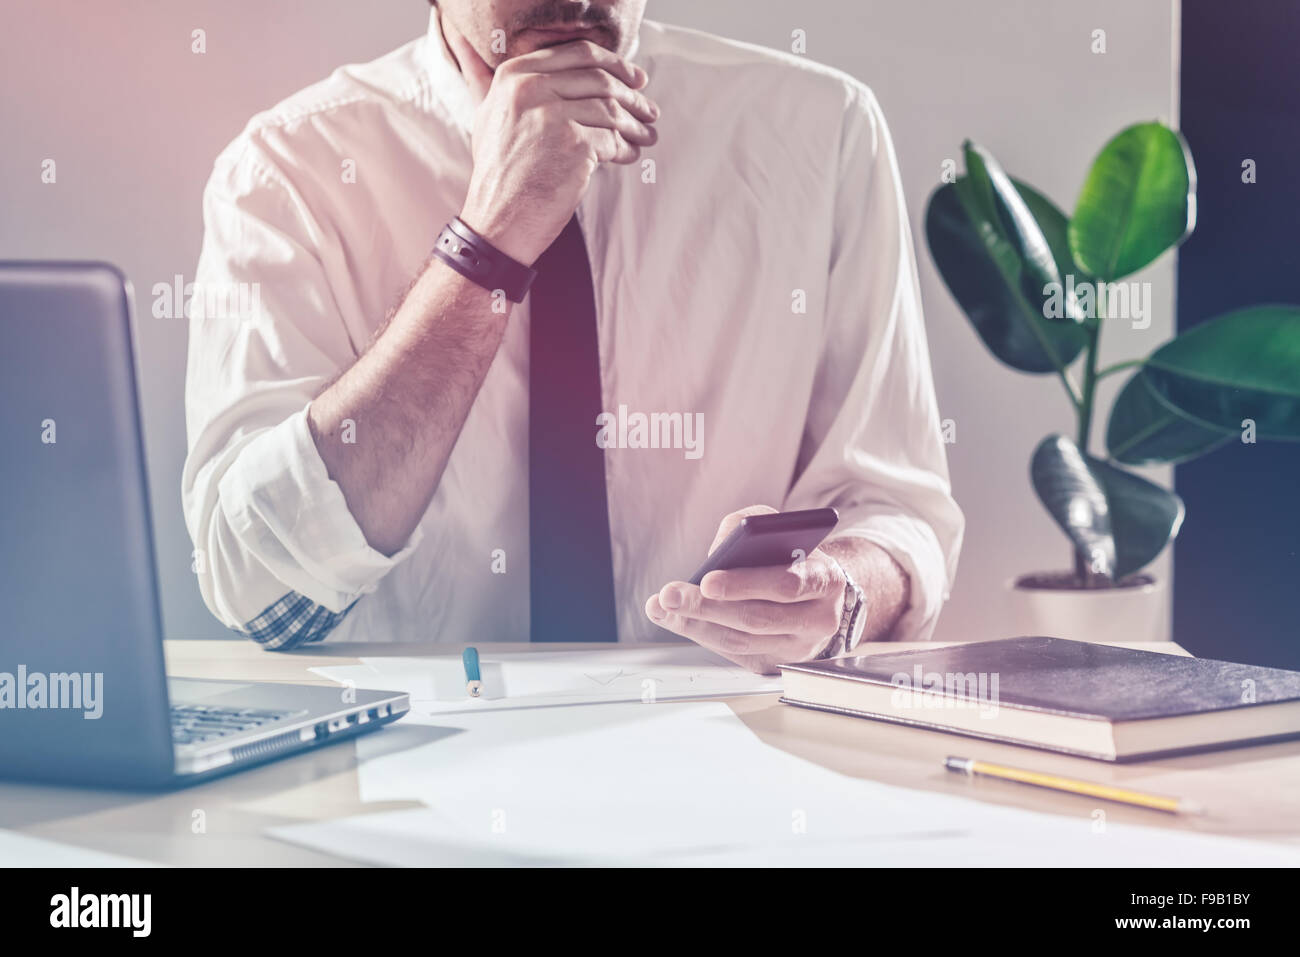 Businessman using mobile phone, working overtime at office desk, multitasking and project deadline concept, retro - Stock Image